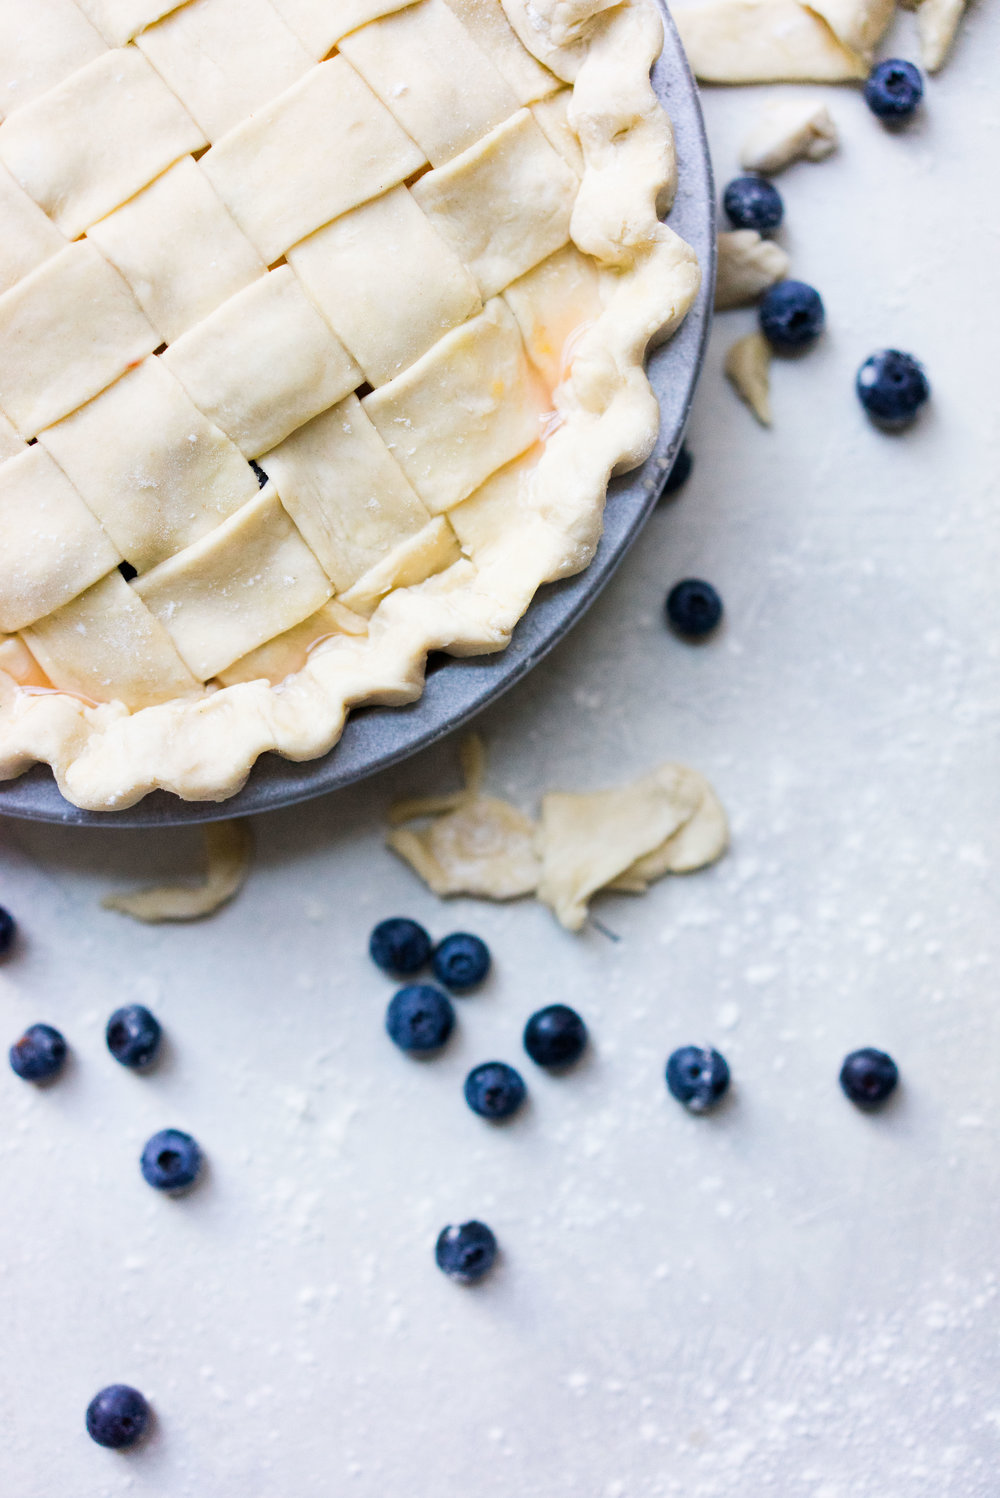 Peach and blueberry pie. The epitome of summer - flavourful fruit, held together in a flaky tender crust, elevated by a touch of sugar. The perfect summer dessert - when you have amazing fruit, you can keep things simple.